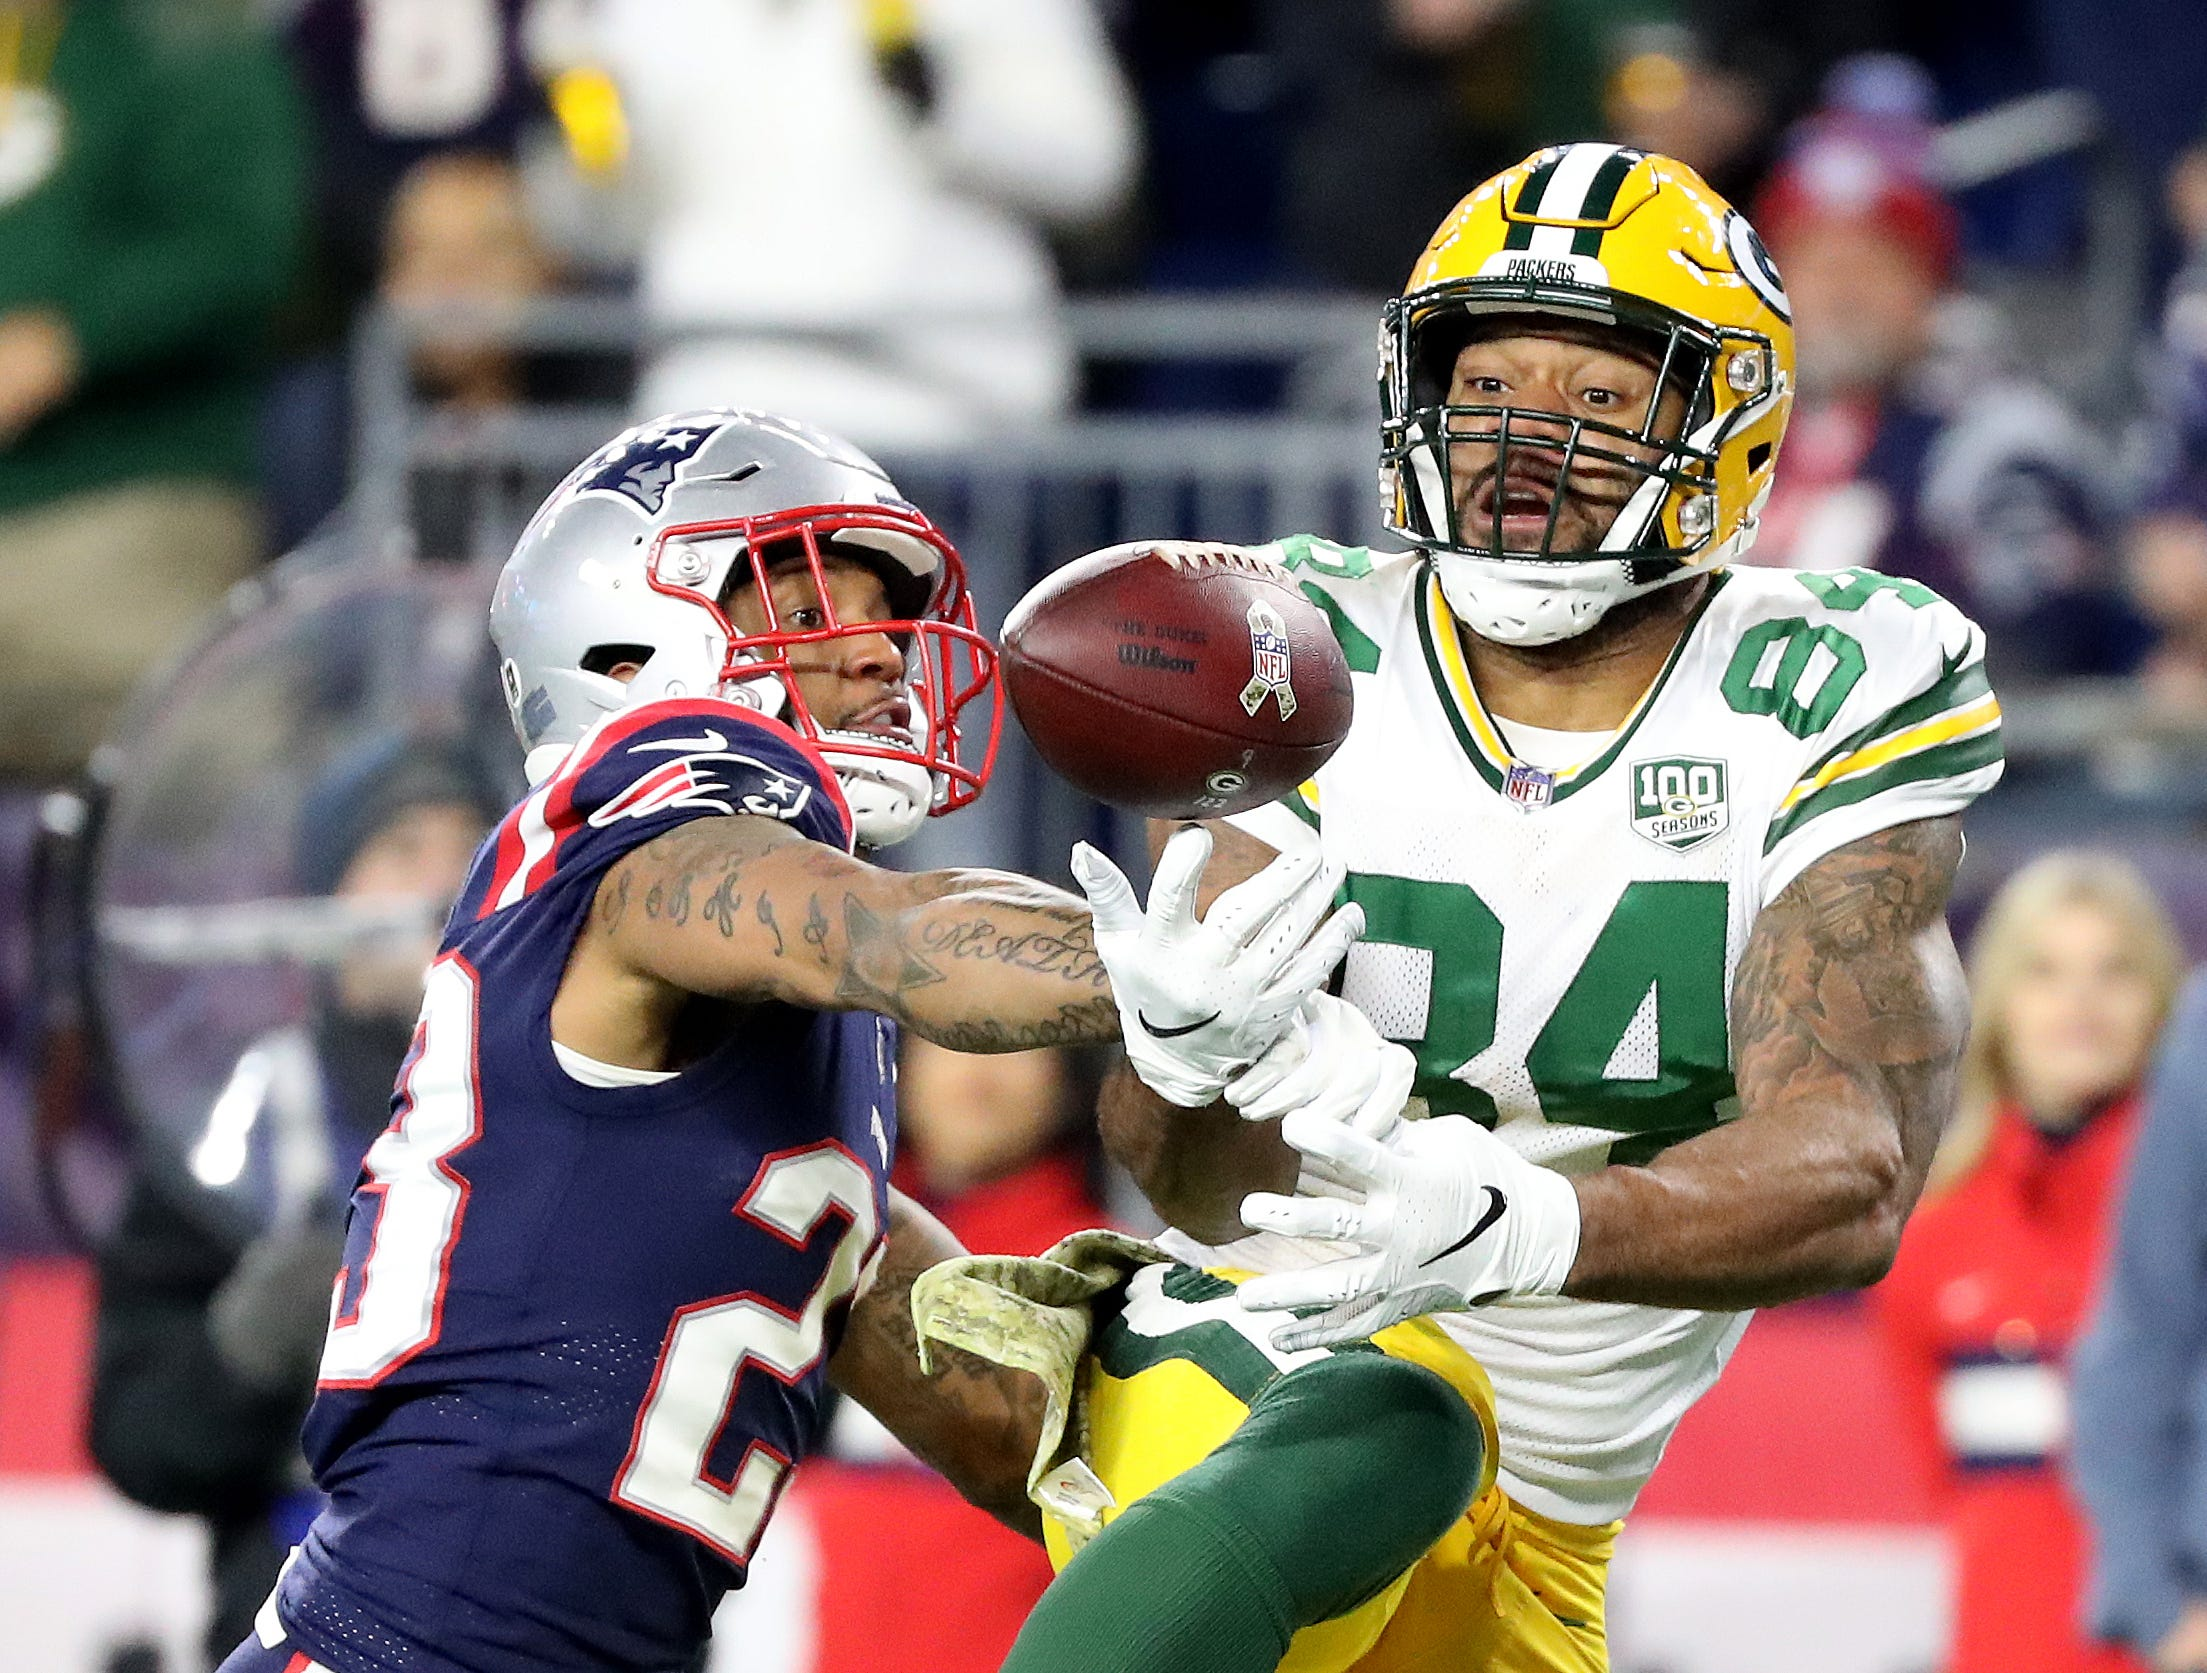 Green Bay Packers tight end Lance Kendricks (84) can't find the handle on a pass in the end zone against the New England Patriots Sunday, November 4, 2018 at Gillette Stadium in Foxboro, Mass.